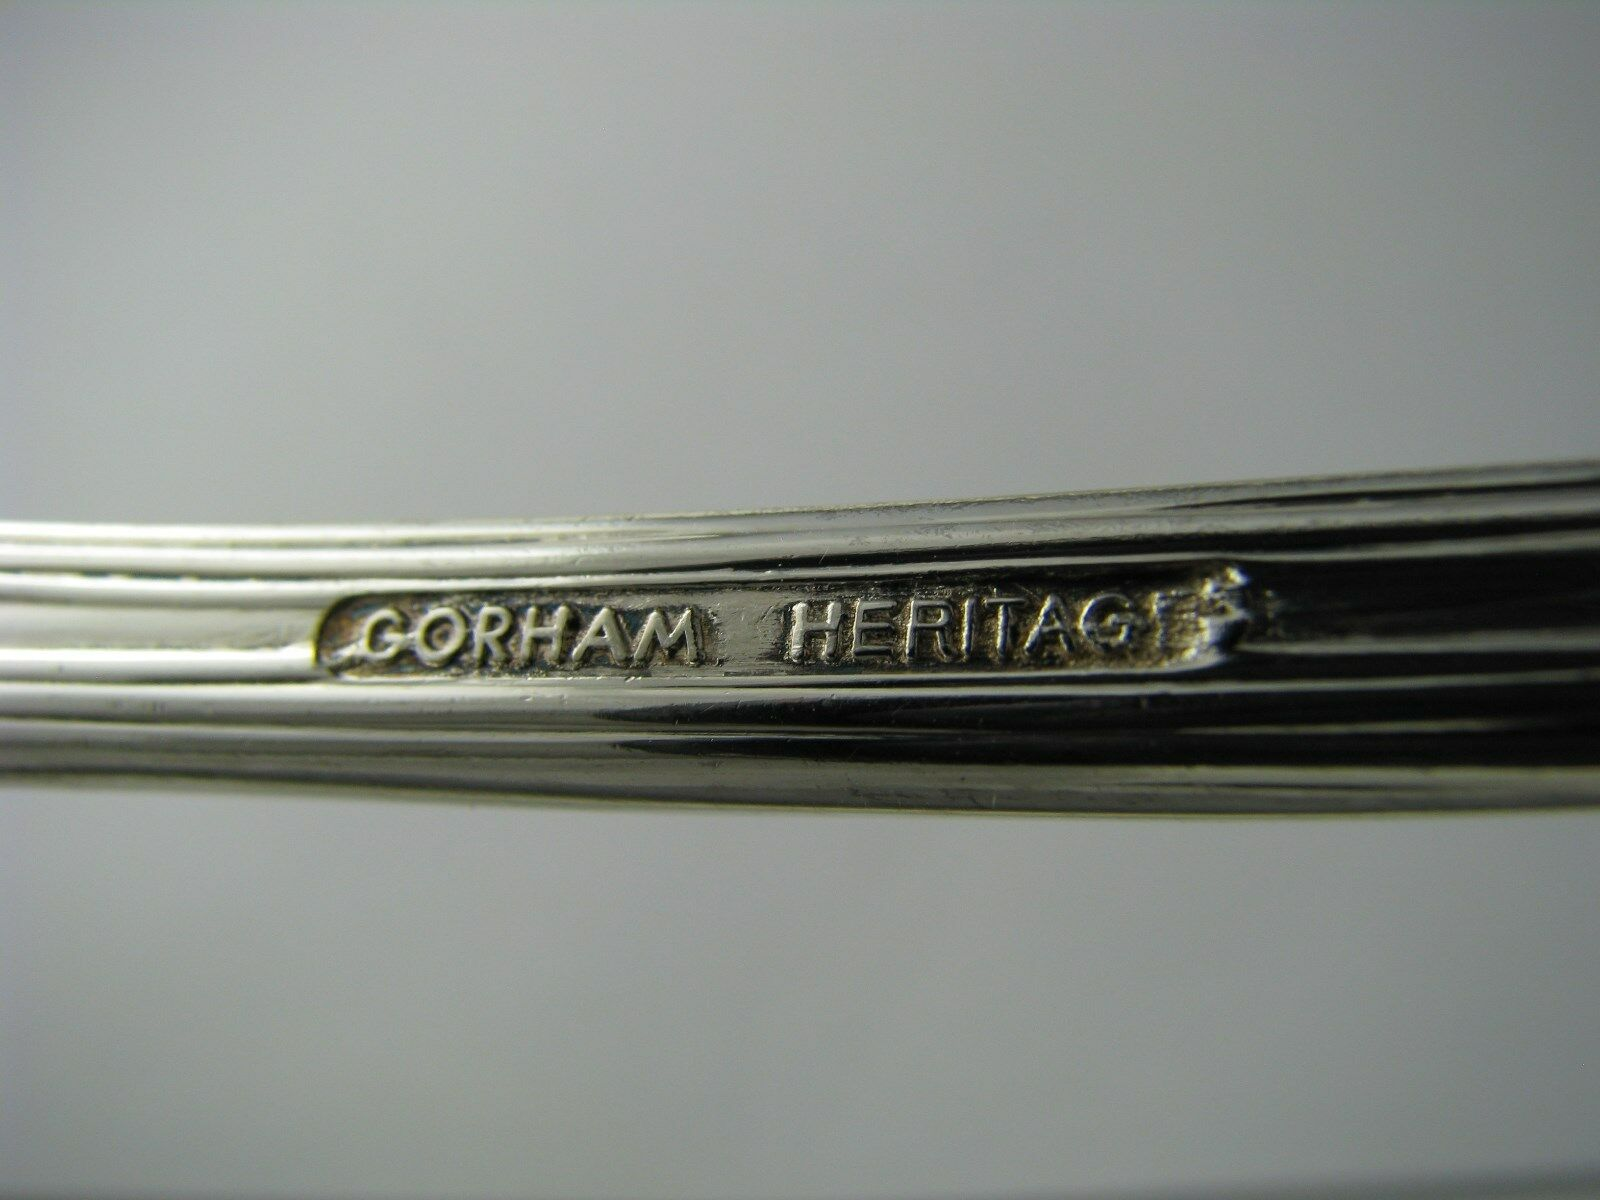 SILVER PLATED SPOON PASTA SERVING SPOON Gorham Heritage Italy Silverplate Ca1980 - $75.00